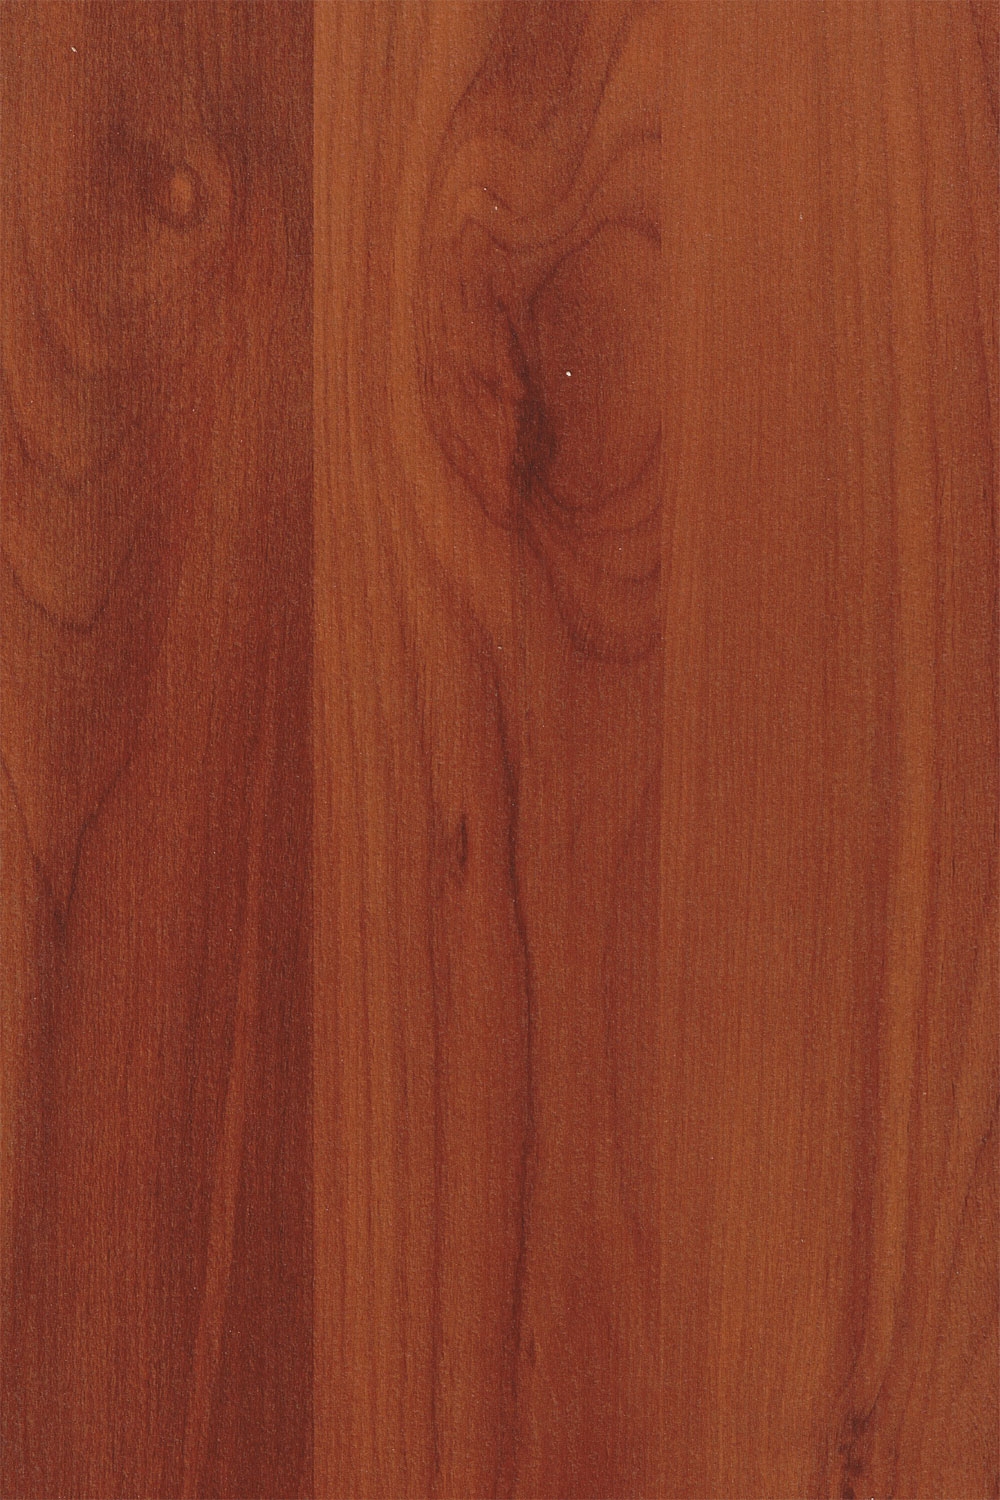 Laminate Flooring Product : Welcome to china laminate flooring manufacturer of